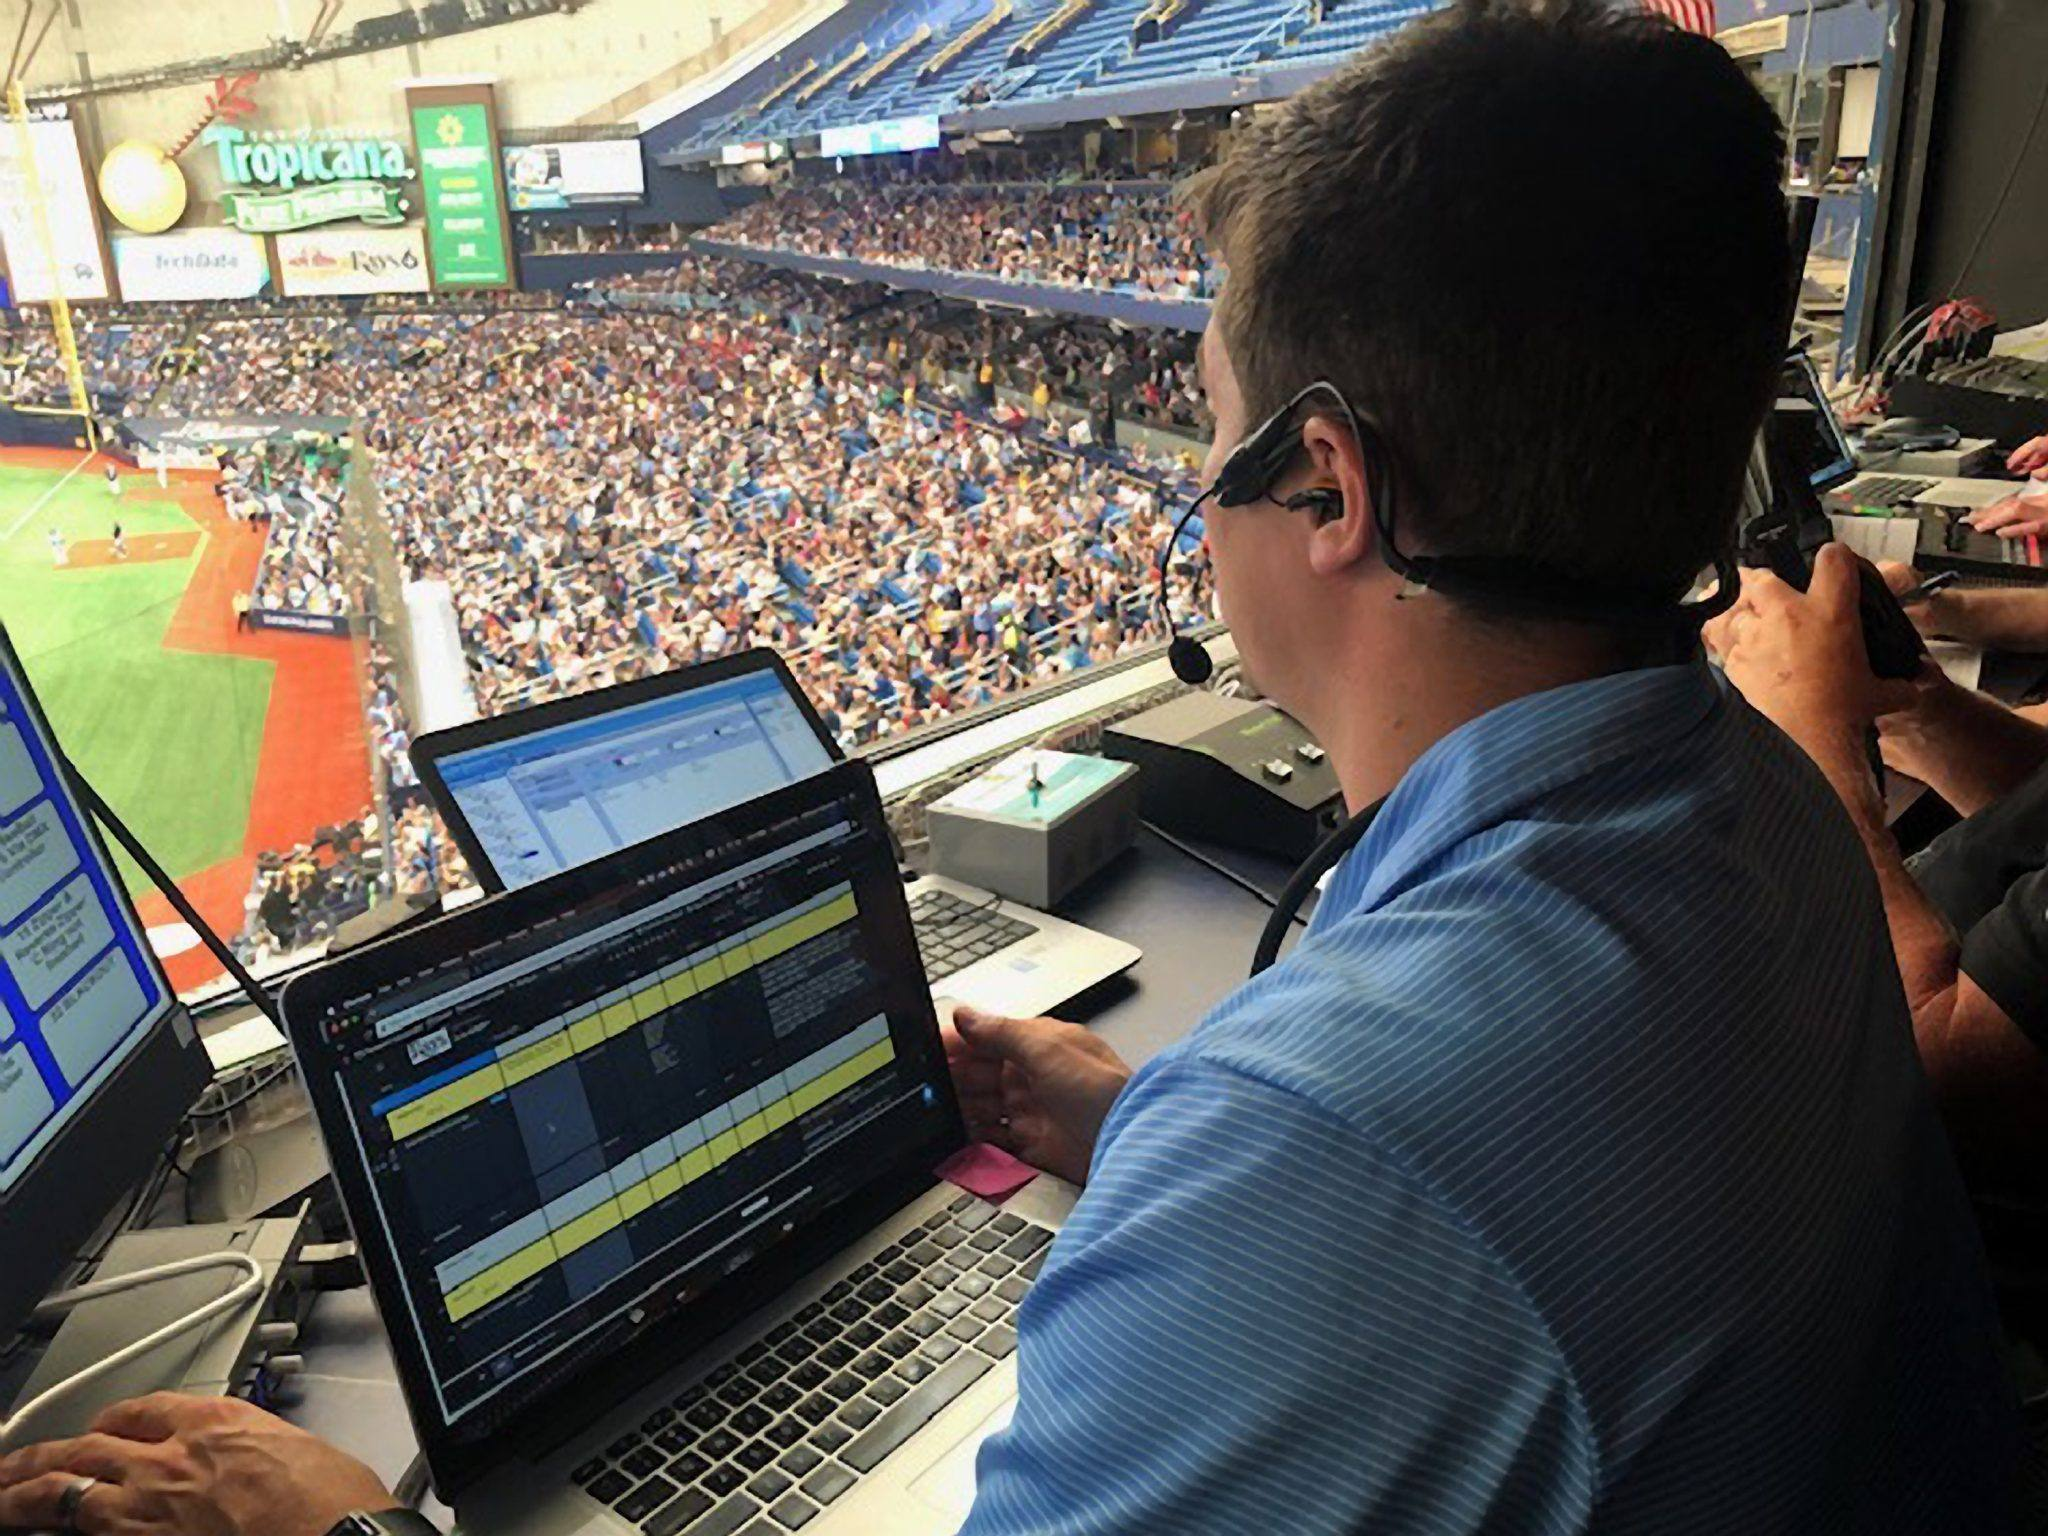 Michael Weinman at the Tampa Bay Rays wearing CM-i5 headset